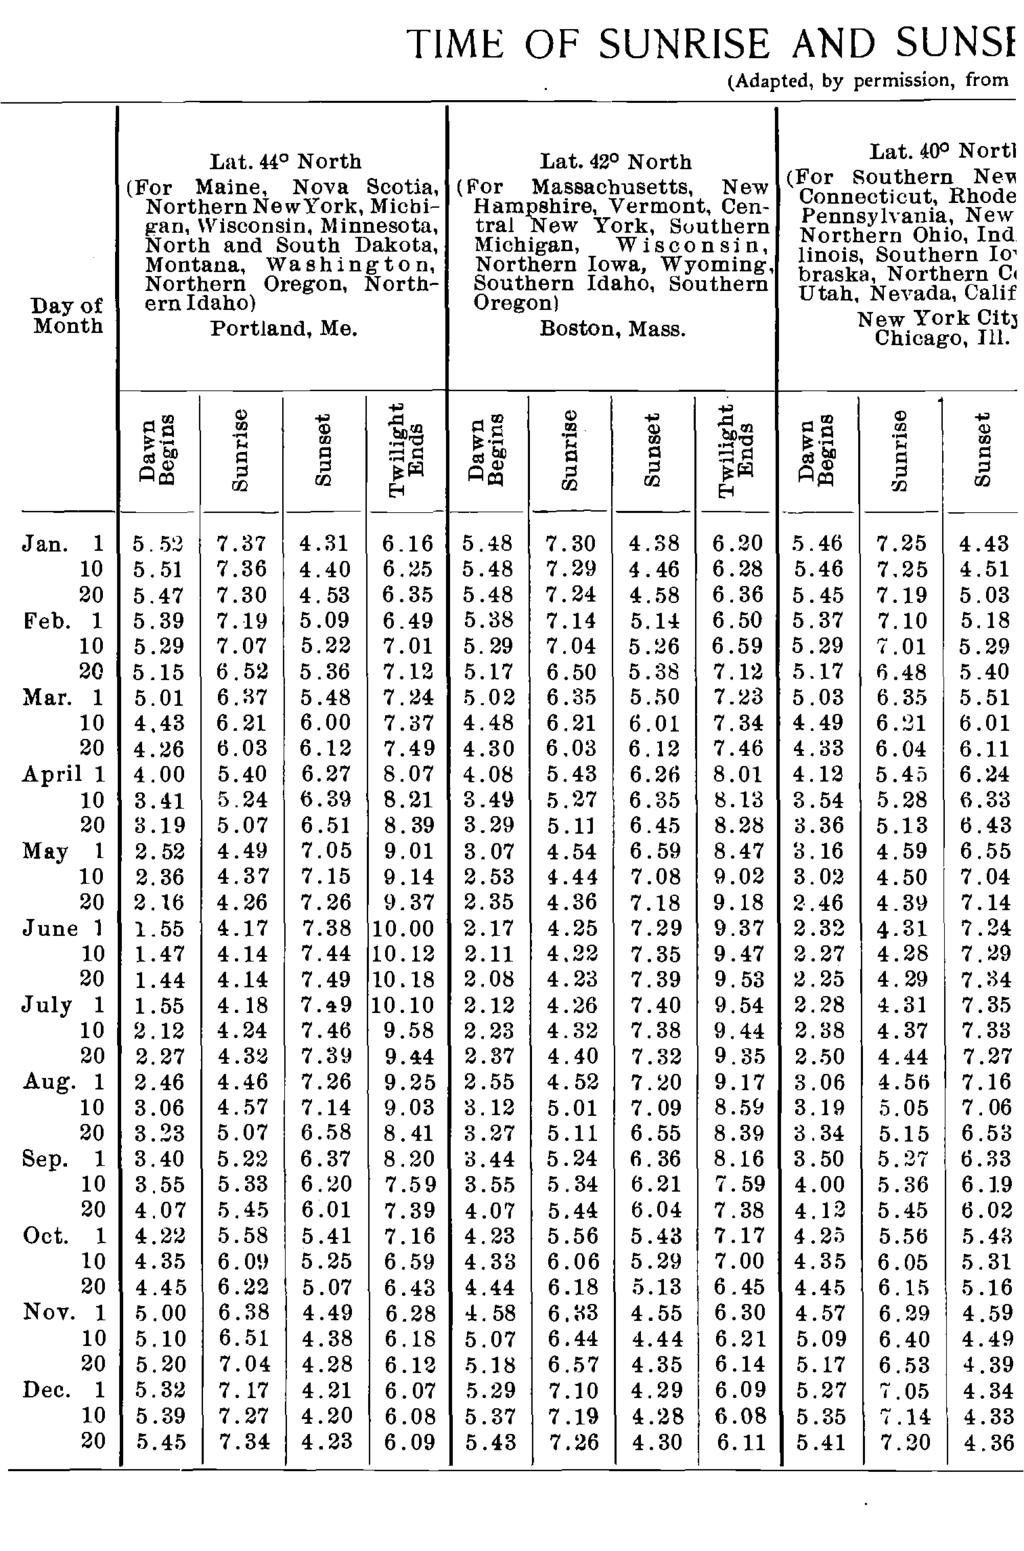 TIME OF SUNRISE AND SUNSI (Adapted, by permissiori, from Day of Month Lat